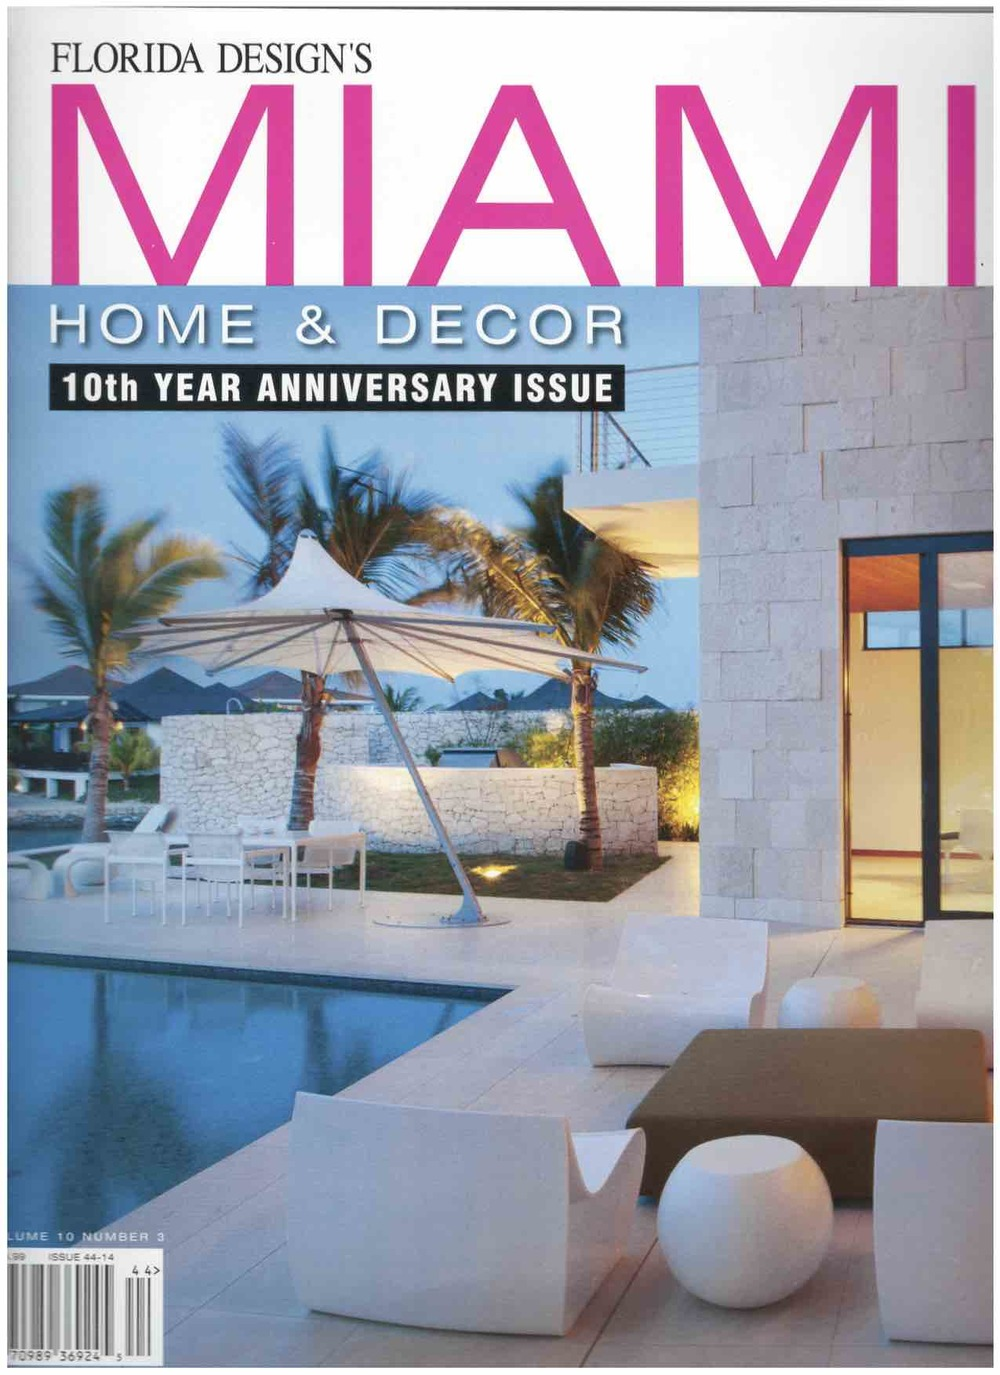 Miami Cover copy.jpg